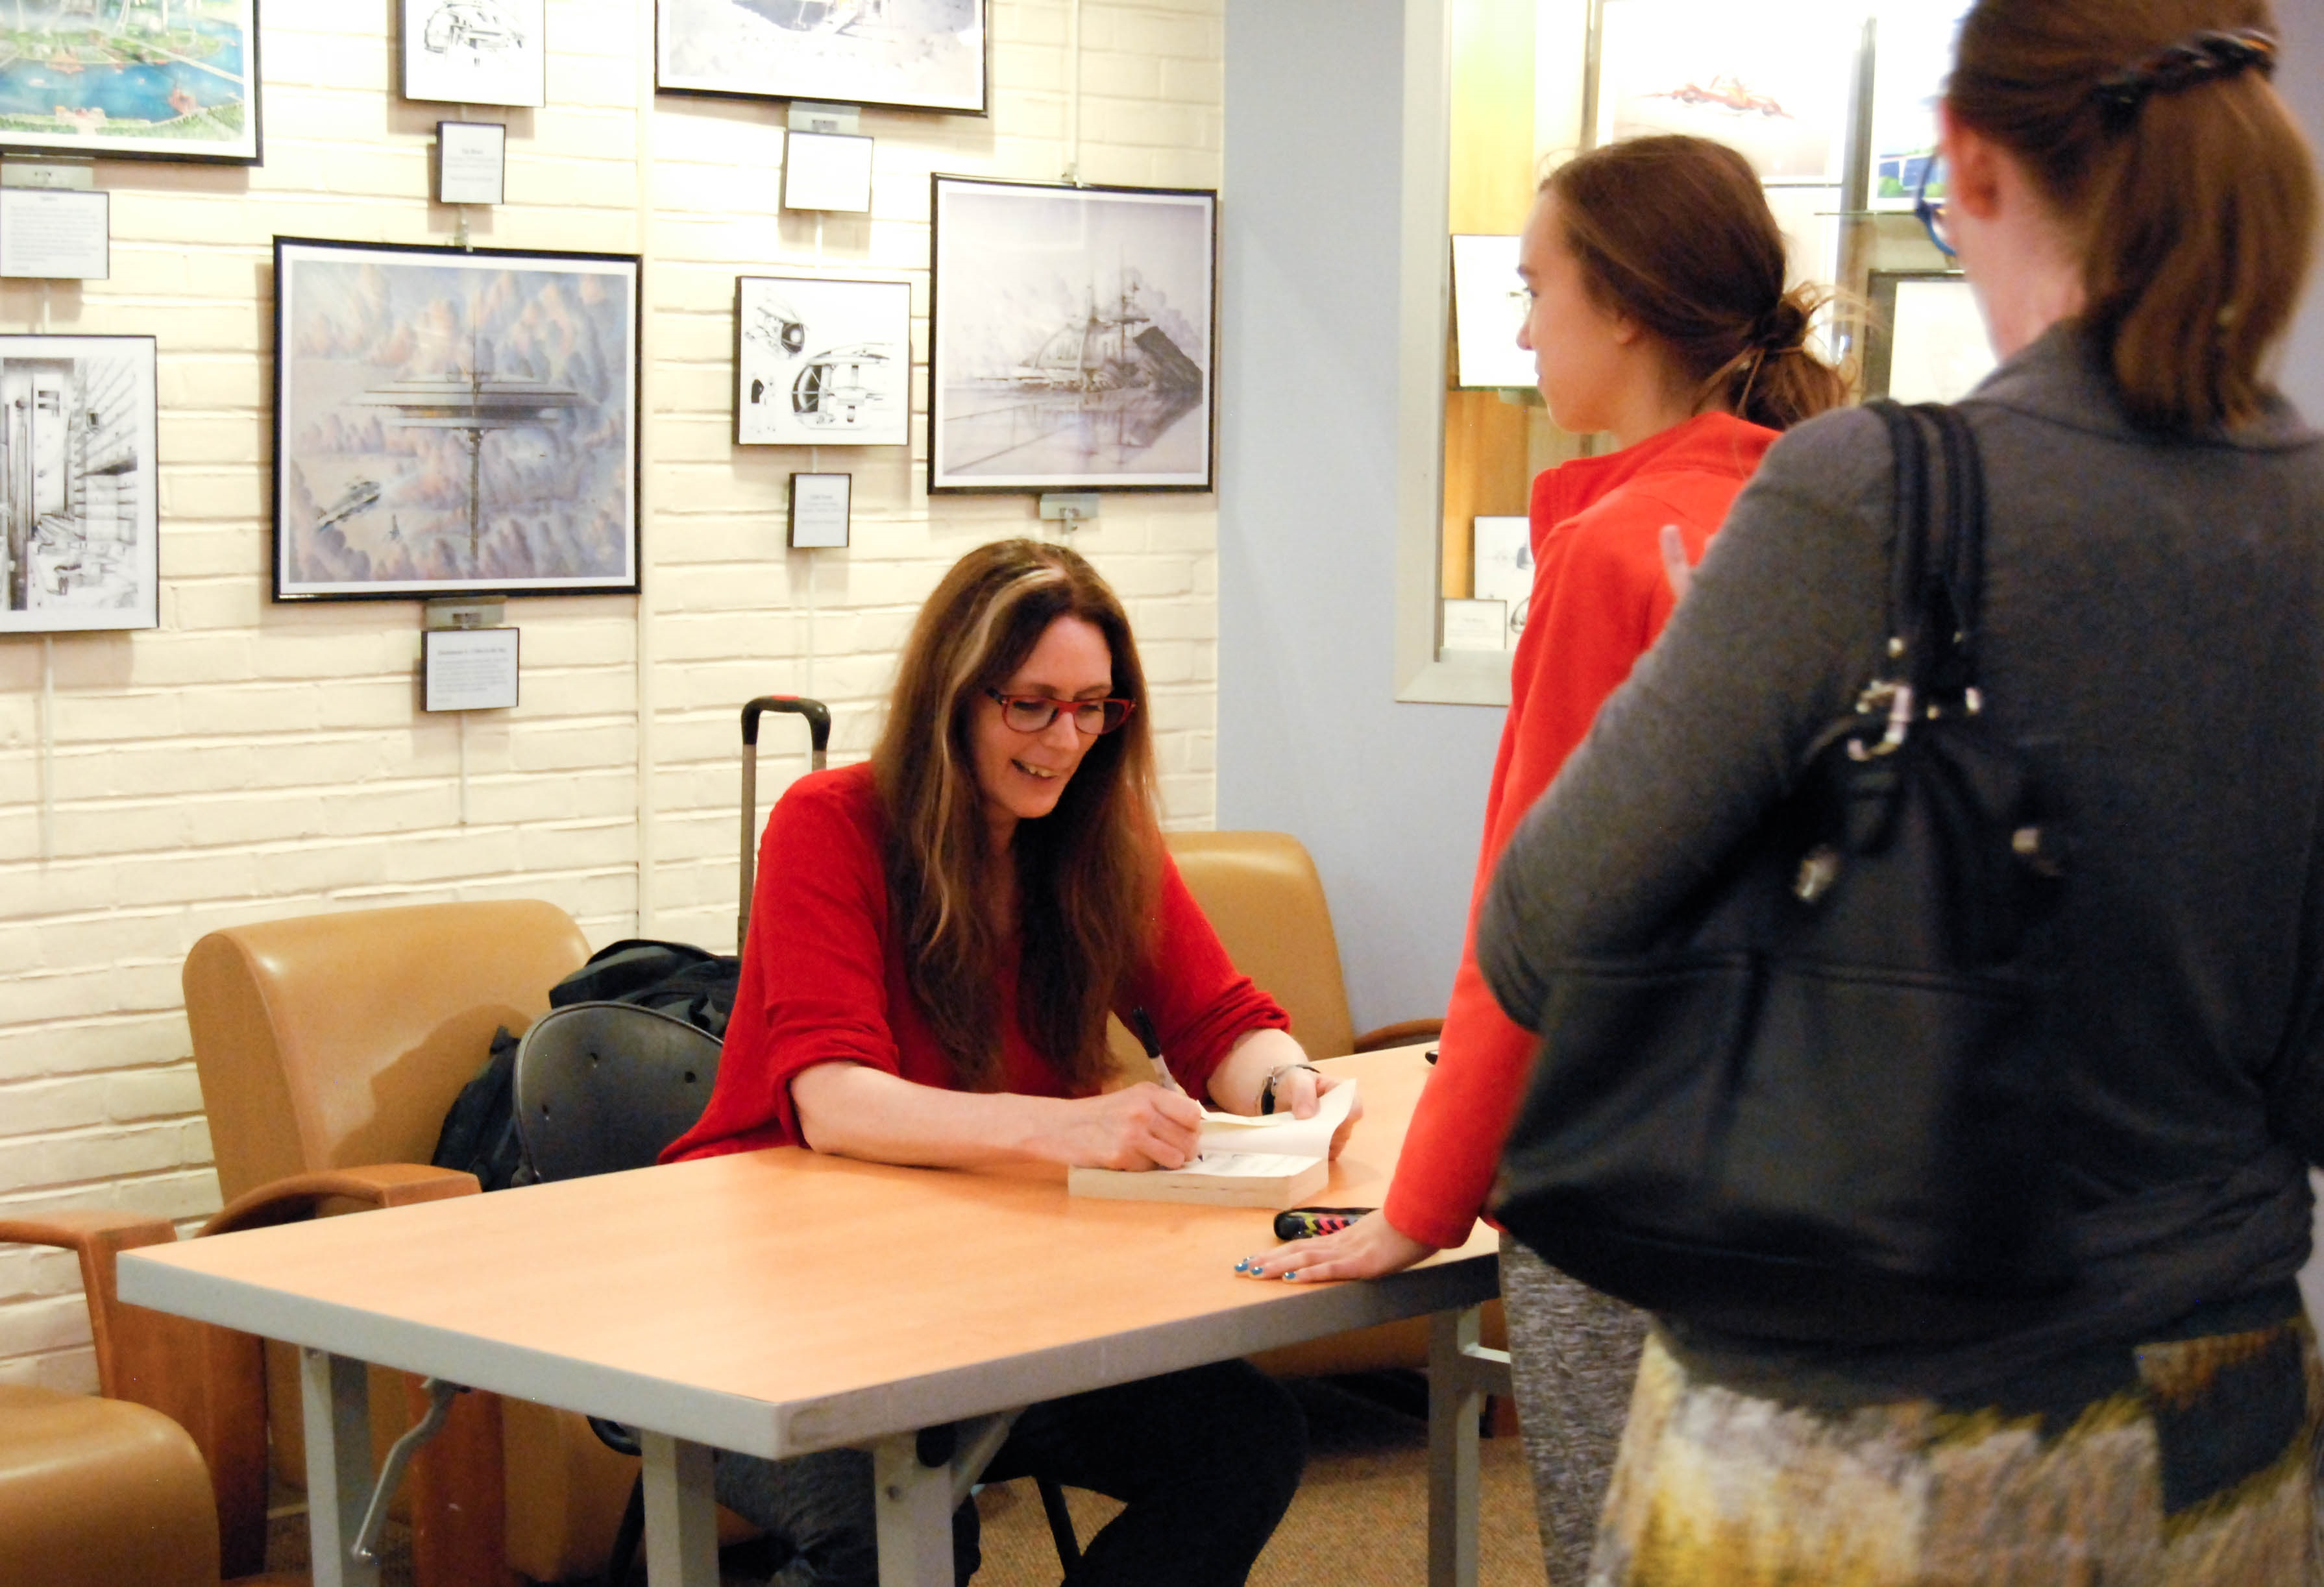 Author Laurie Halse Anderson visits Bethesda library Oct. 17 to discuss and promote her new book, Ashes, the third and final segment of her historical fiction Seeds of America trilogy. Photo by Ashley Jiang.